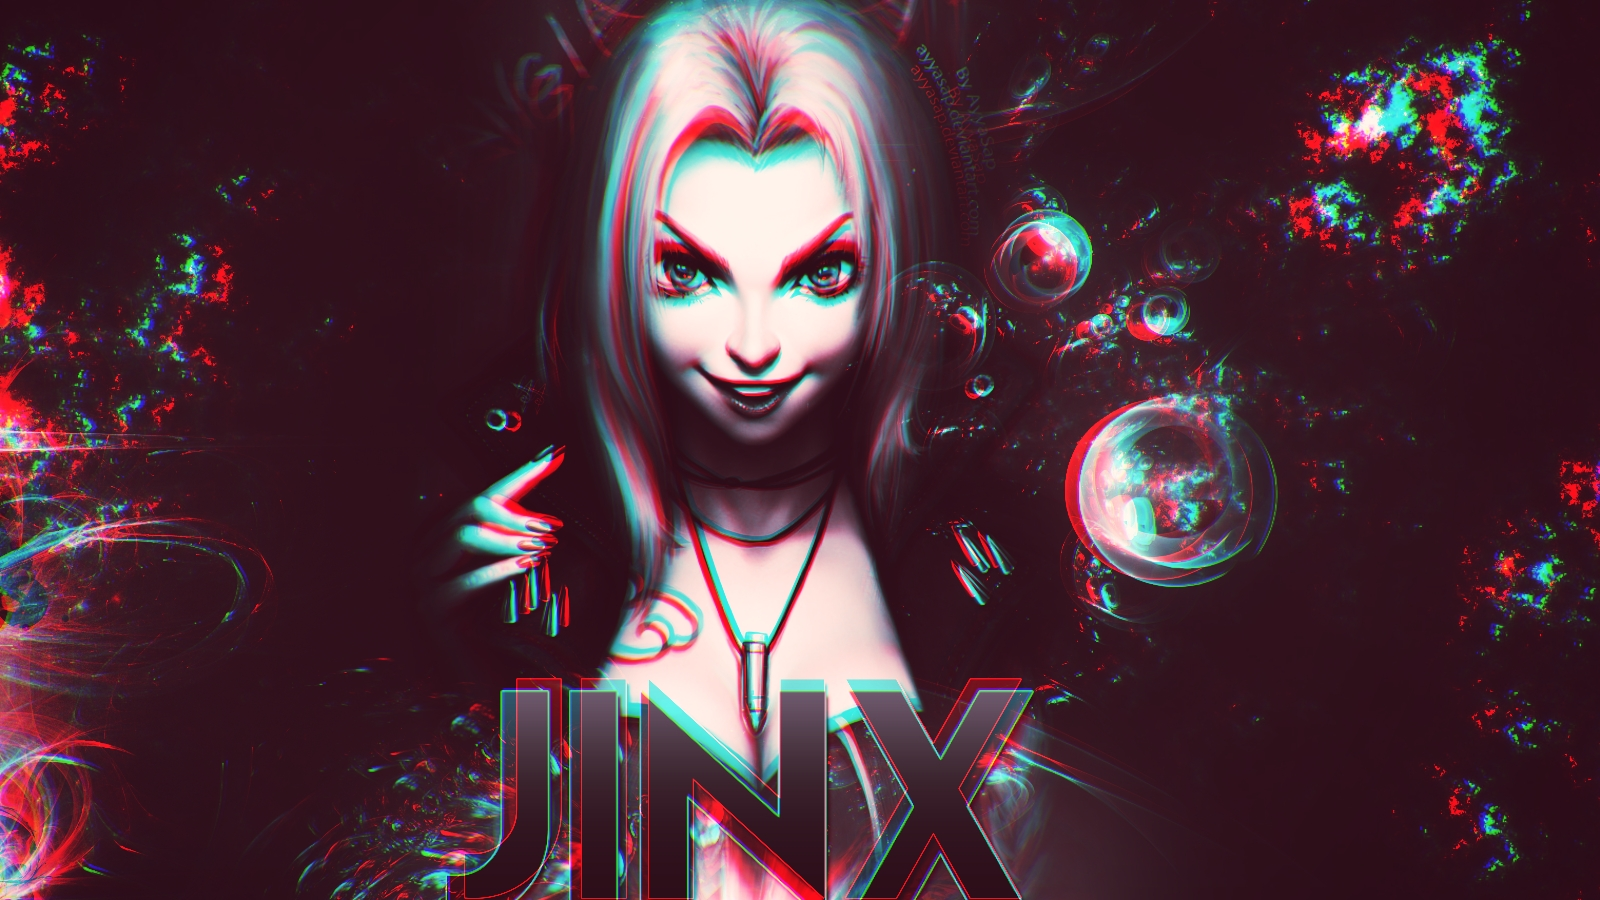 Jinx Wallpaper Hd Posted By John Peltier